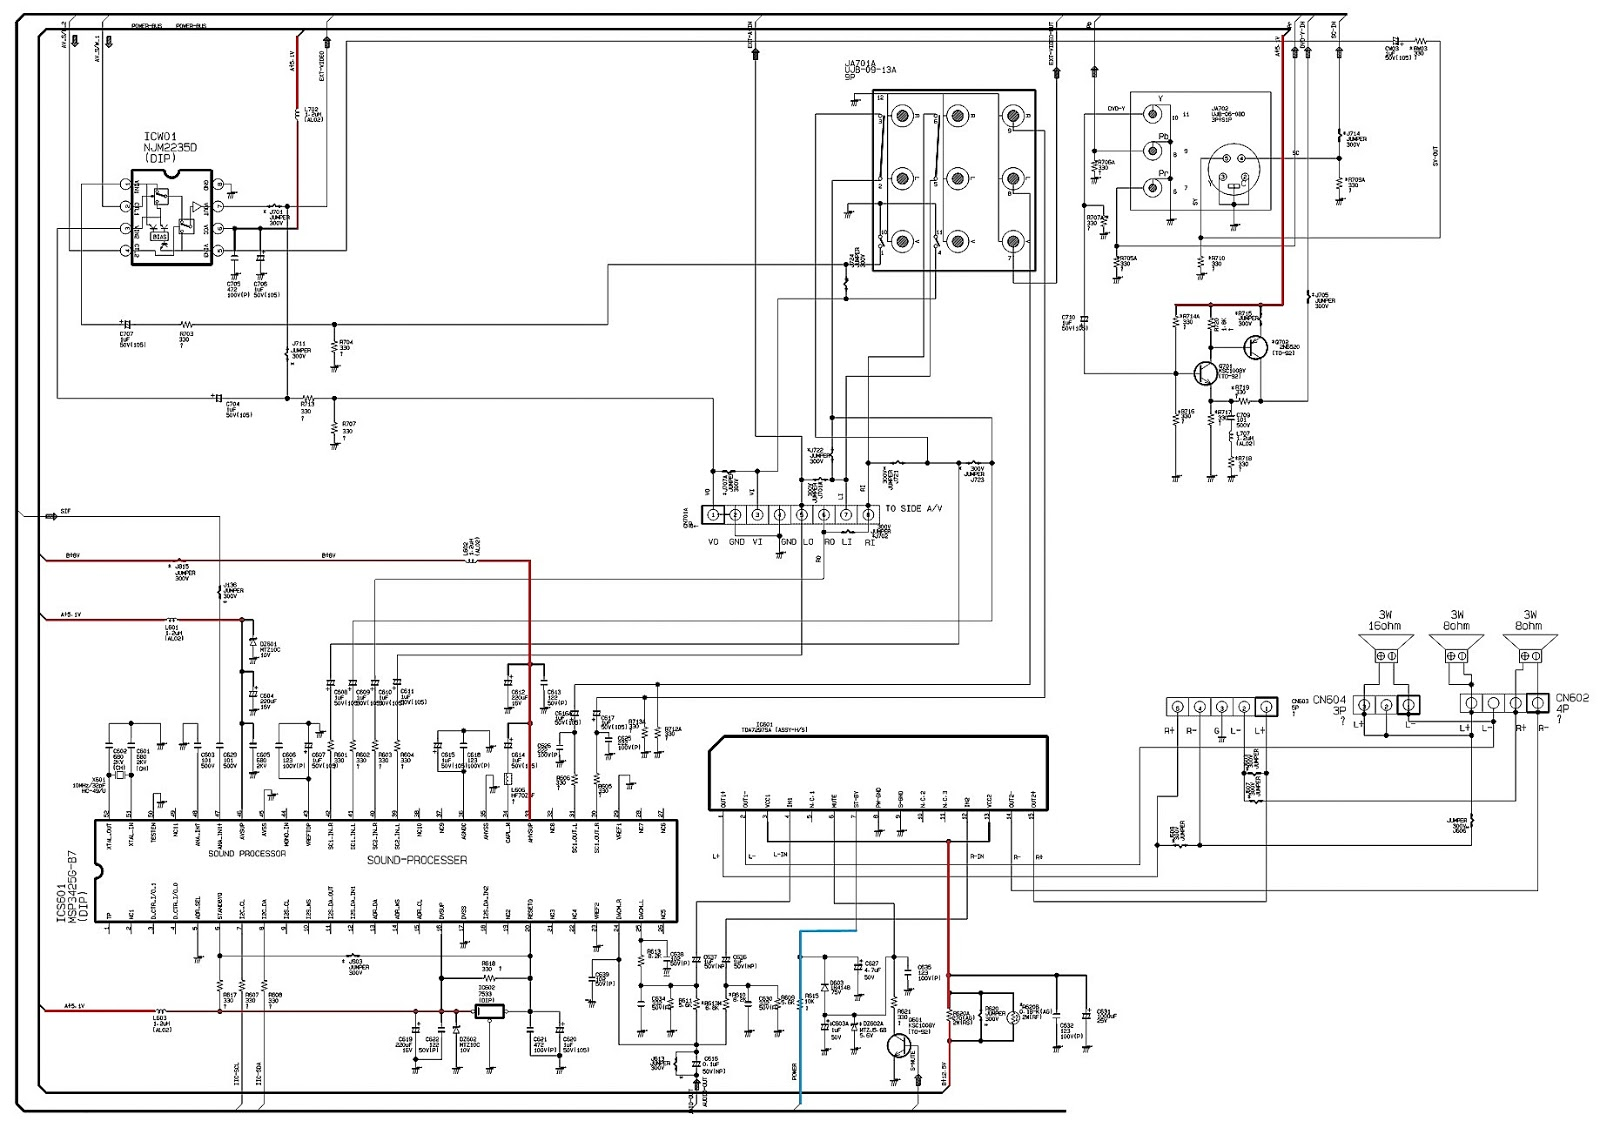 toshiba tv crt schematic diagram wiring diagram rh vw26 ruthdahm de toshiba led tv schematic diagram toshiba color tv schematic diagram